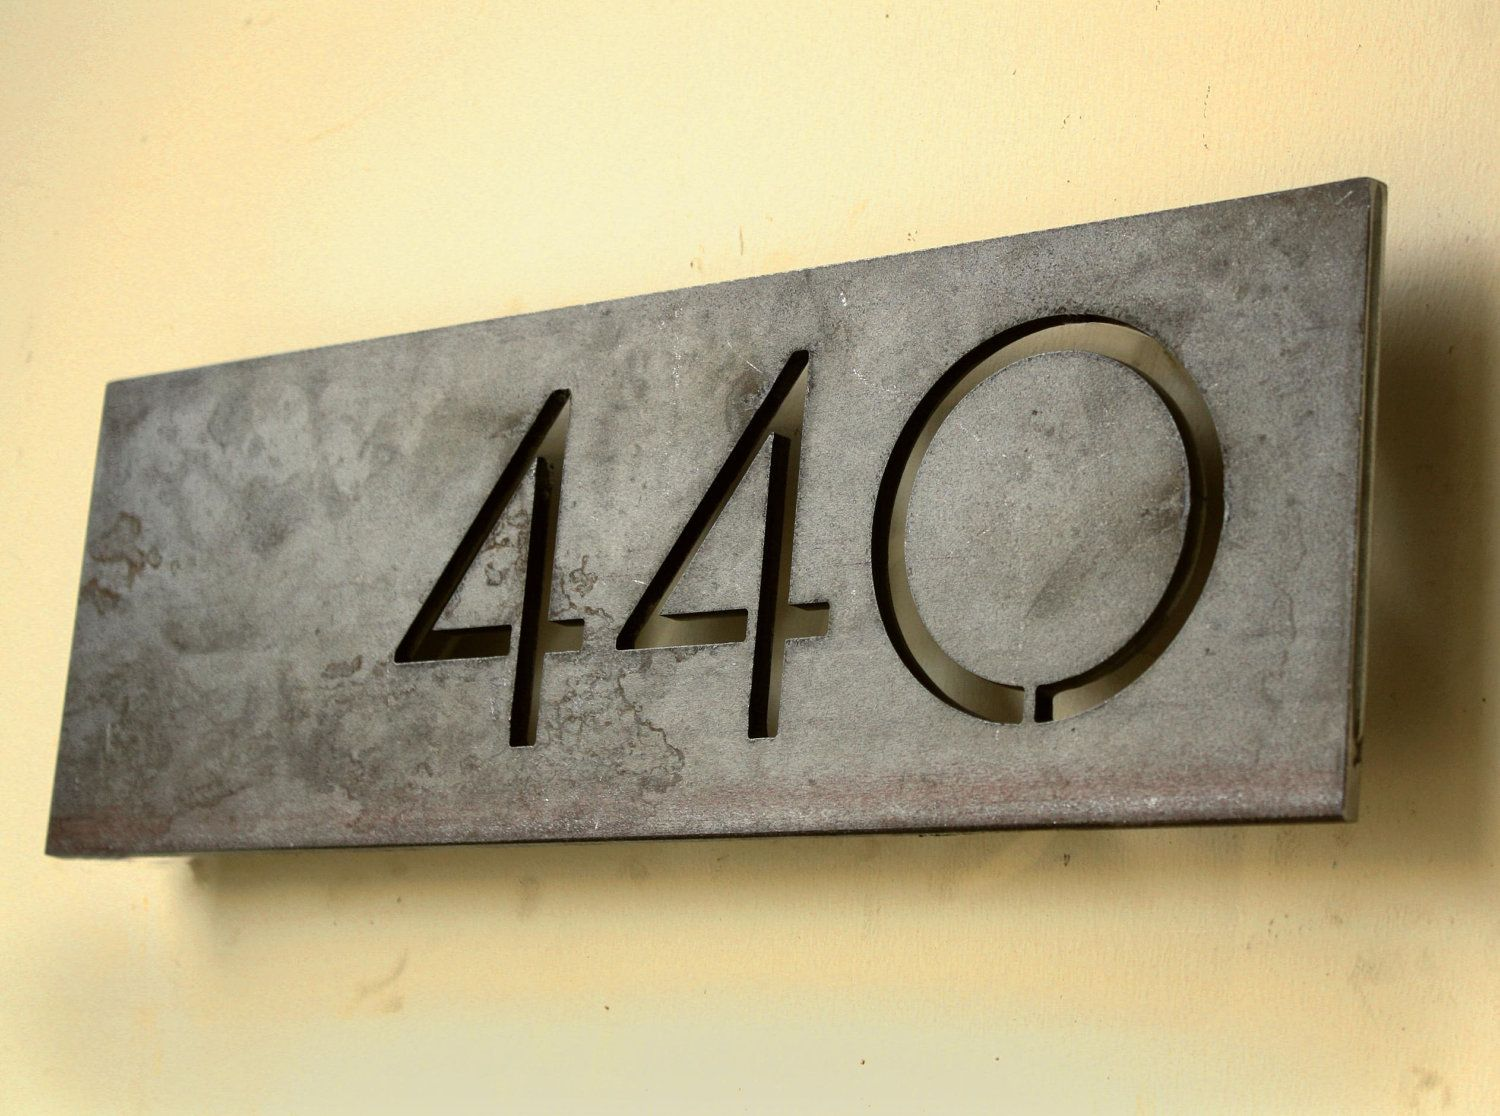 The monroe house numbers steel modern metal address plaque plate